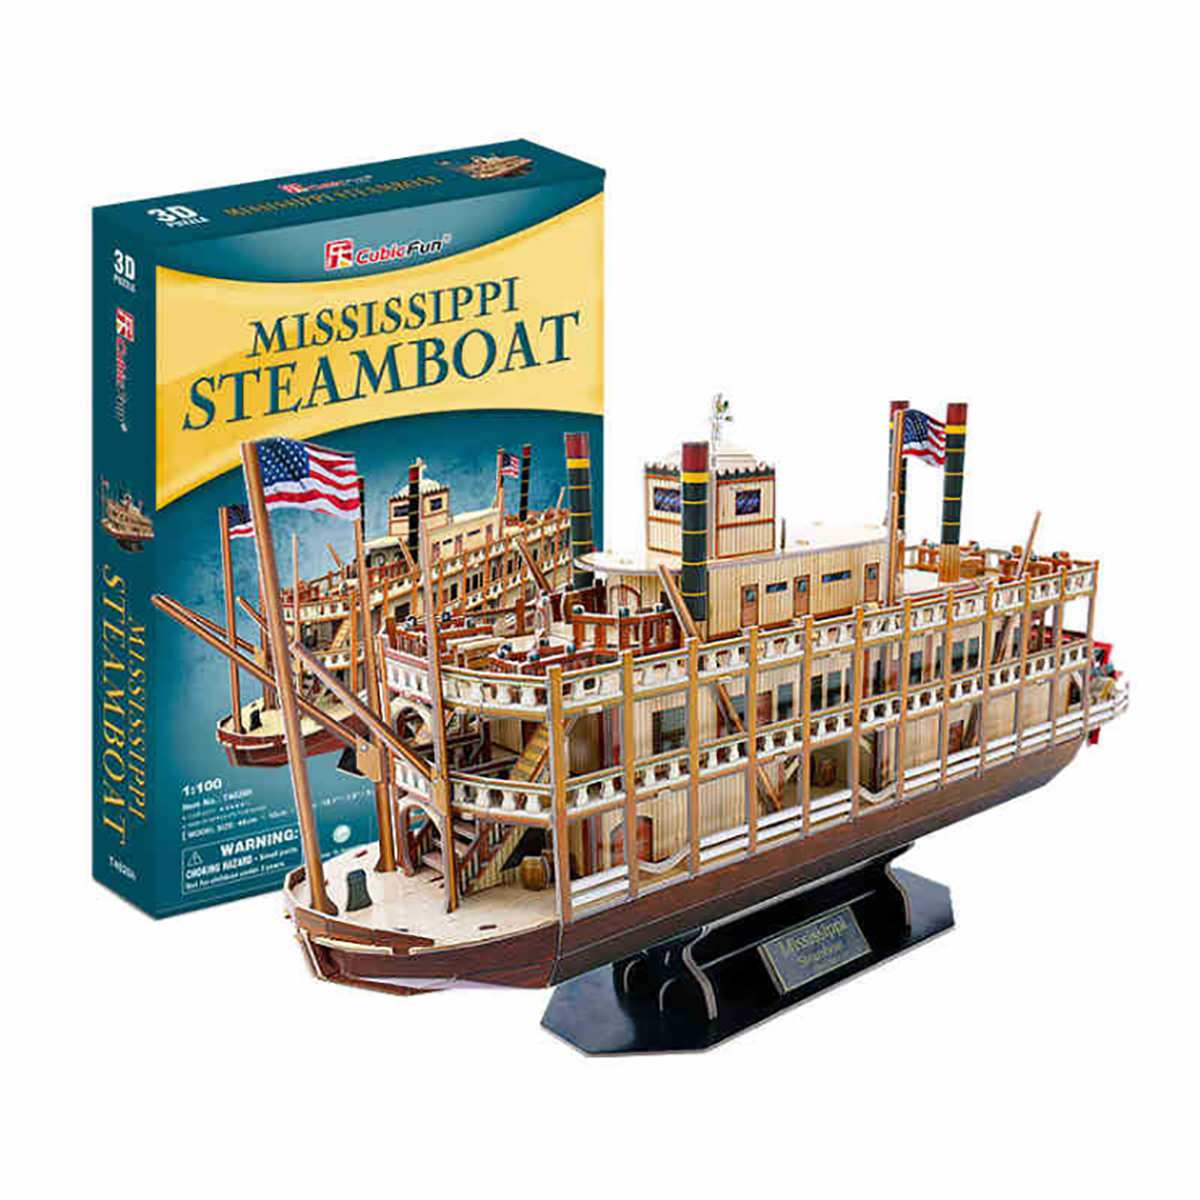 1:100 142pcs Jimusuhutu Steamboat 3D Paper Boat Model Kits Toy Wooden Ship Assembly Kit Kids Toys Children New Year Gift